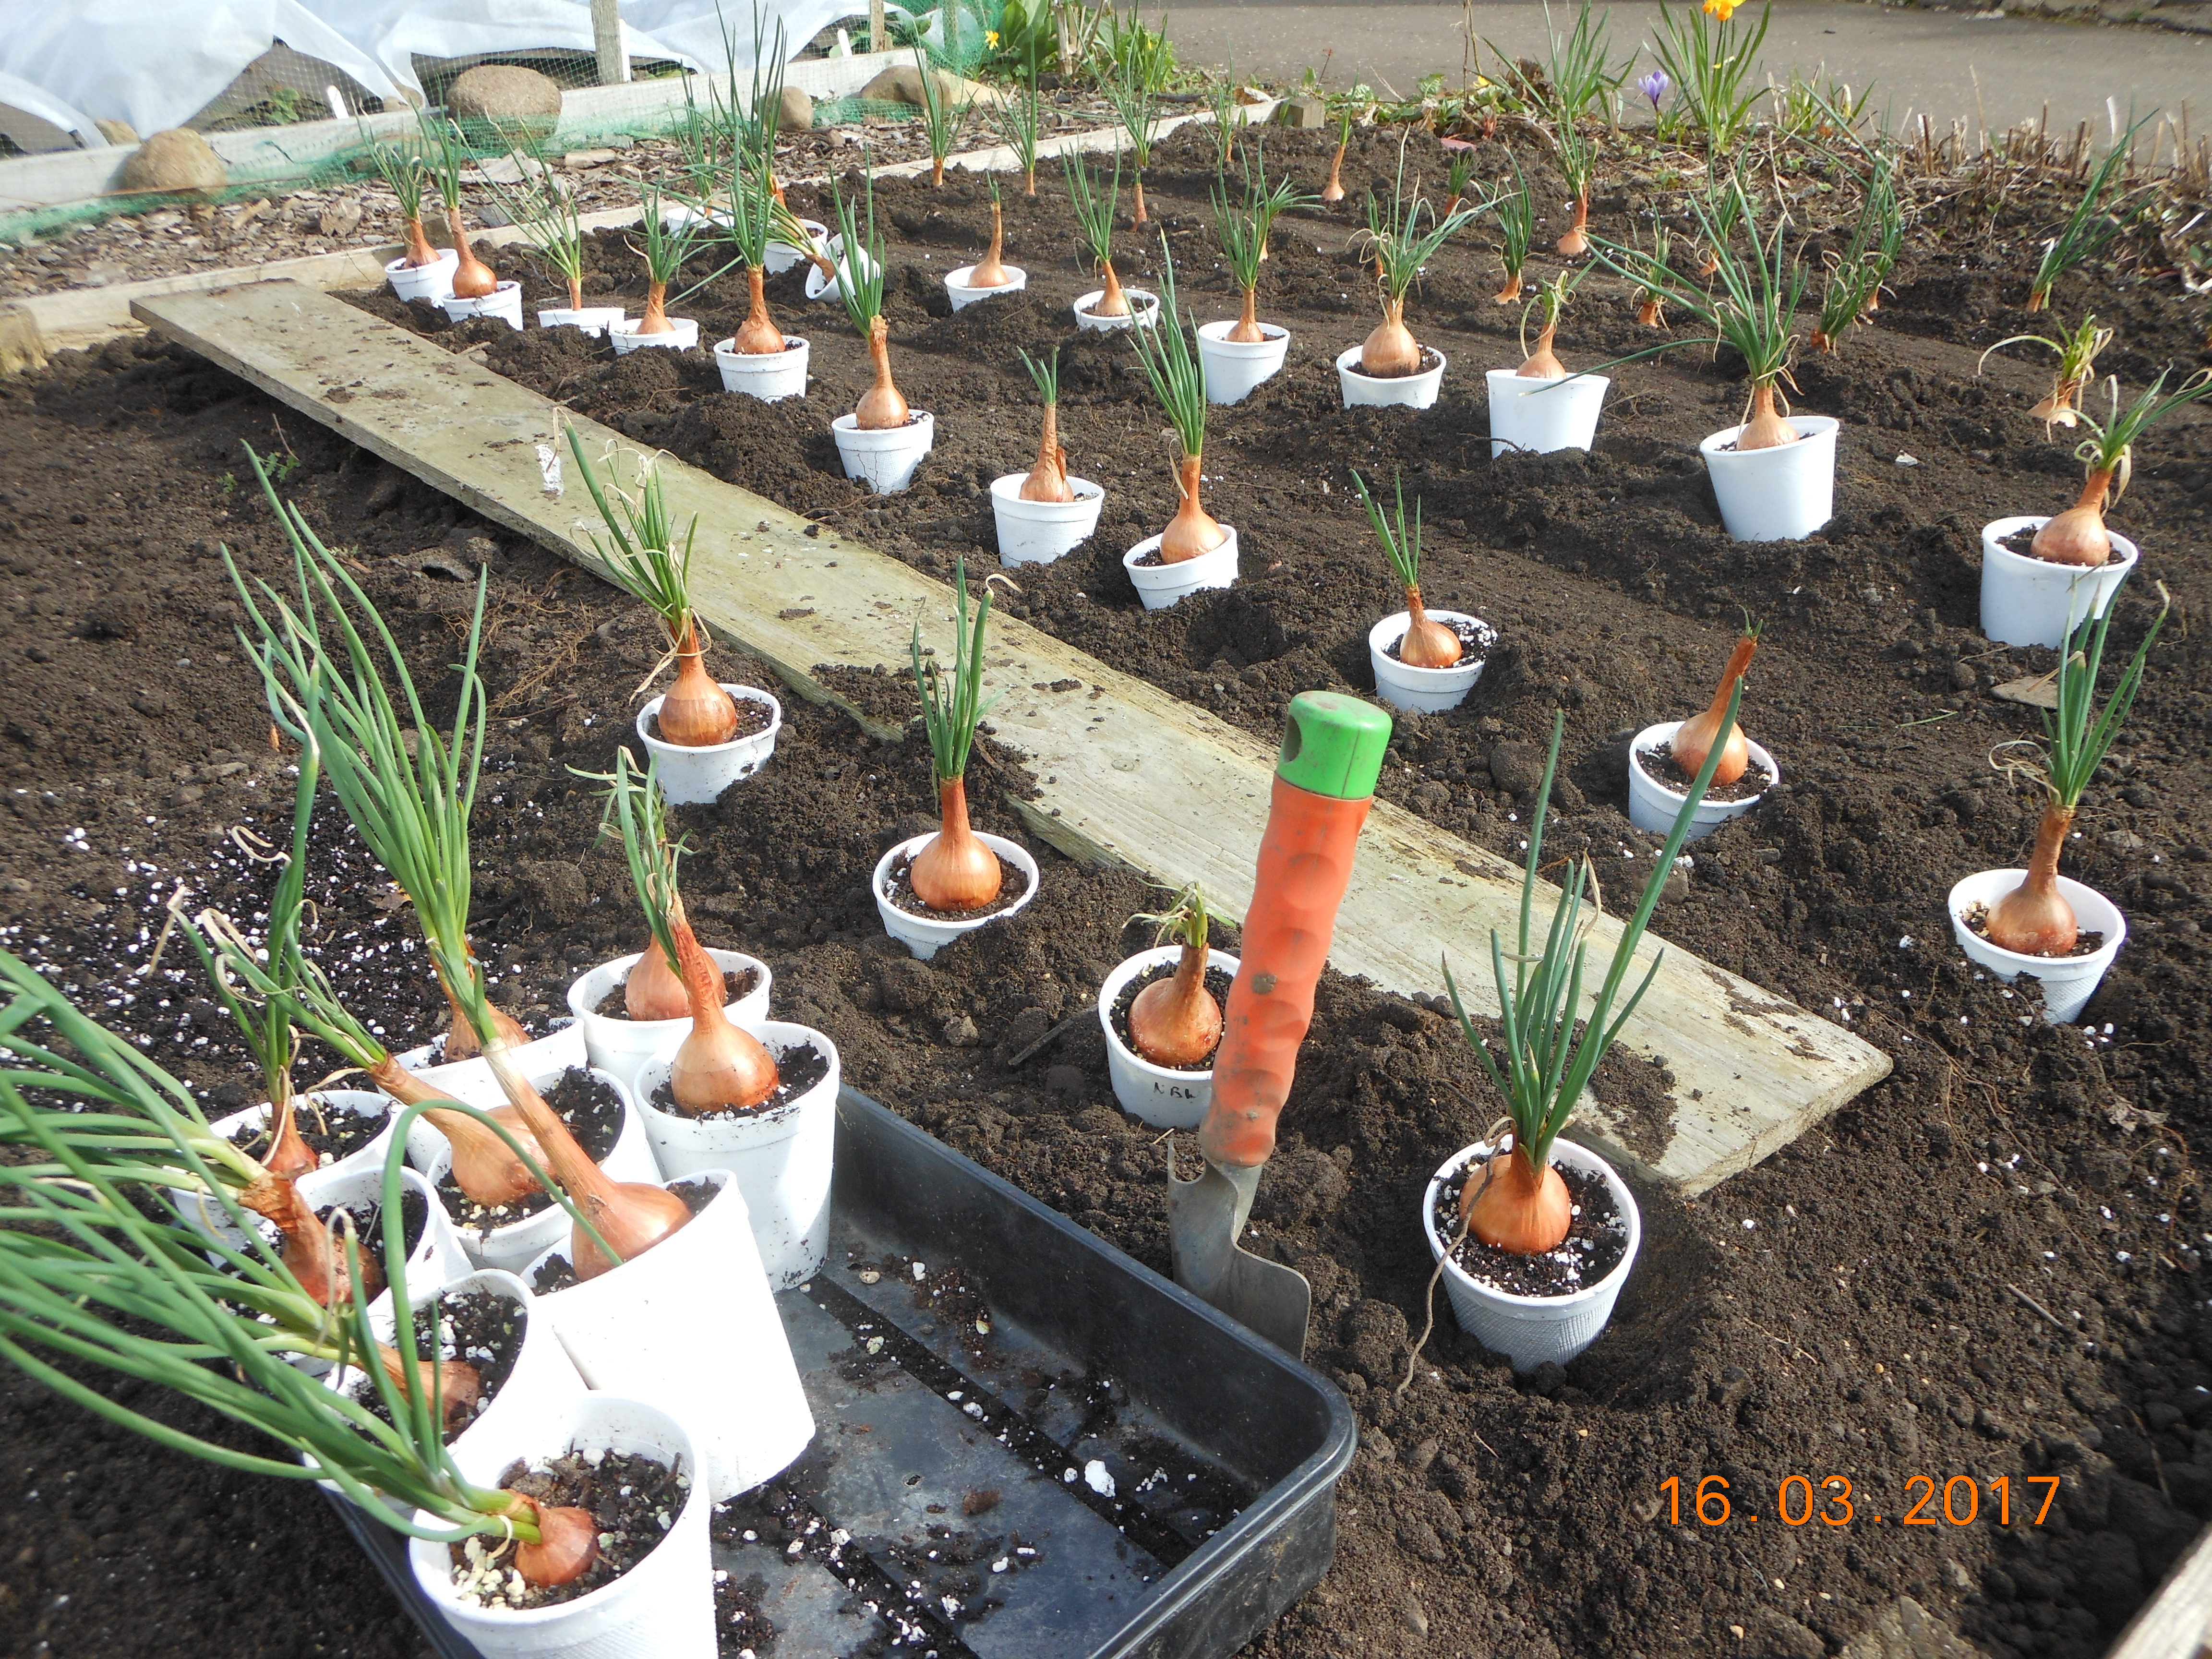 Shallots being planted